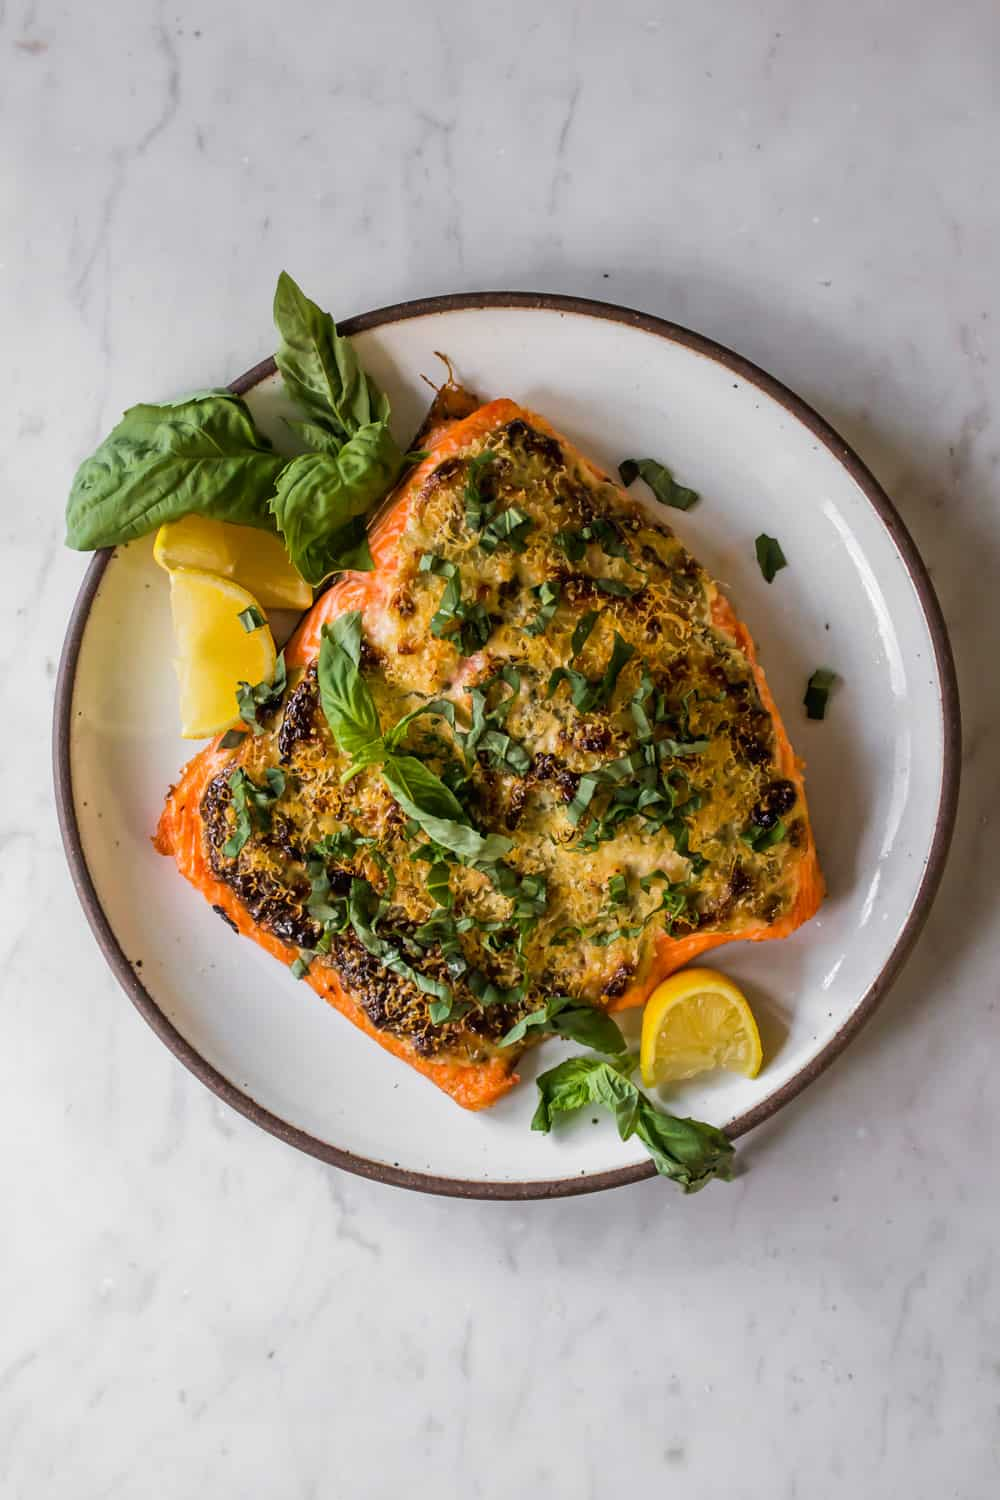 Coated fillet of salmon of a white plate with basil and lemon on the side